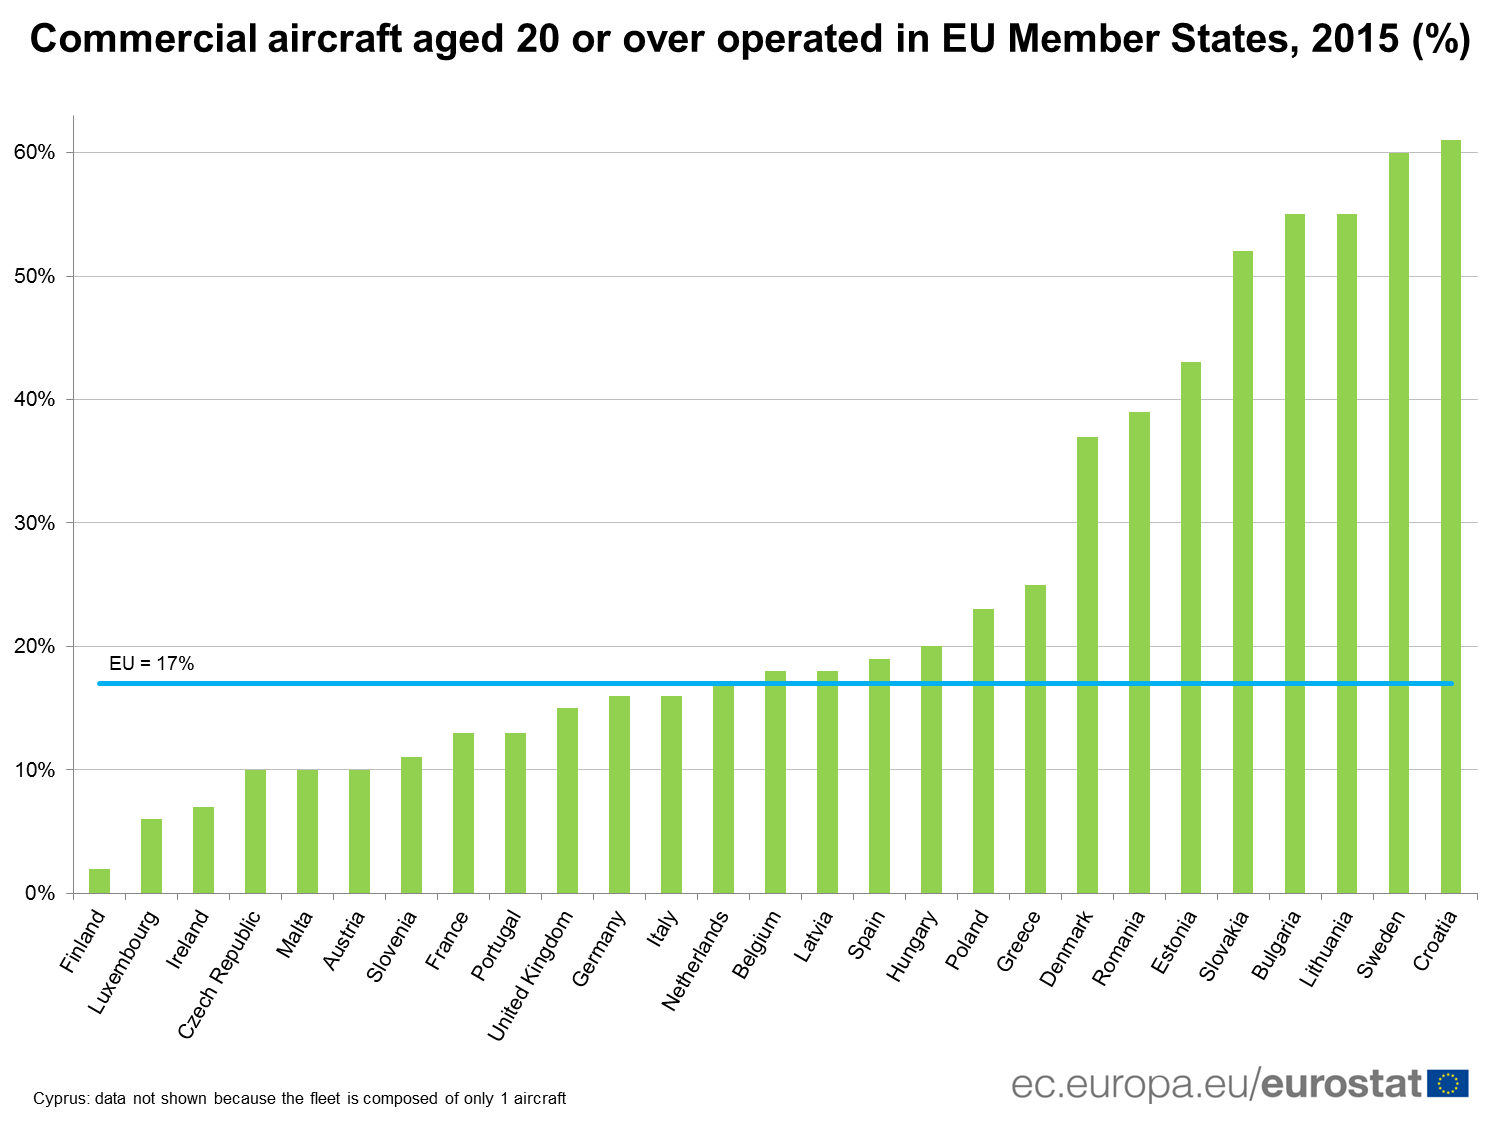 Commercial aircraft aged 20 or over operated in EU Member States